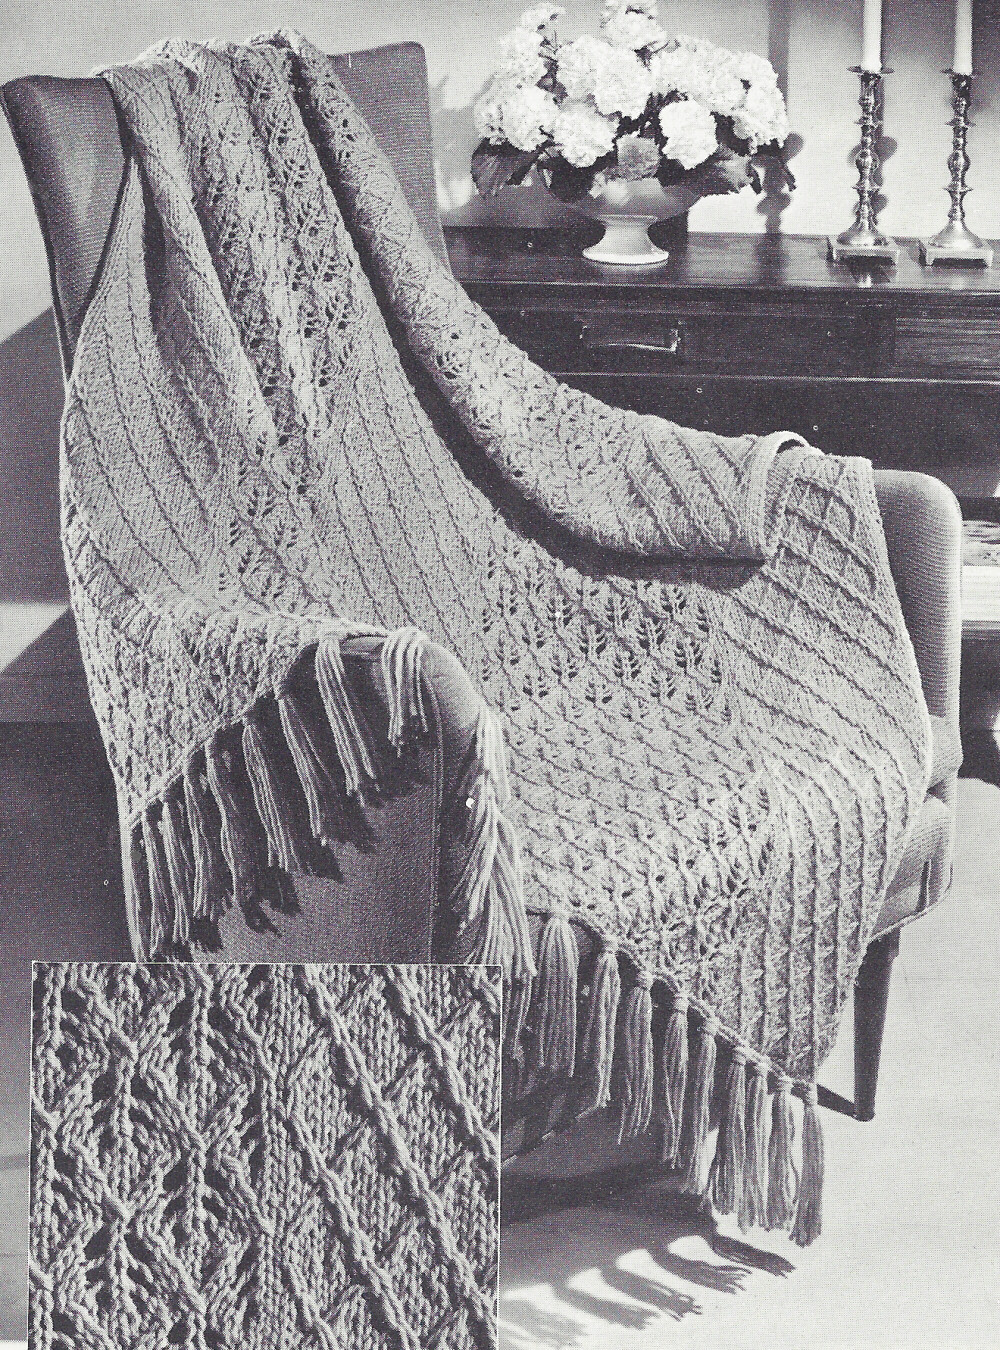 Knitted Afghan Patterns Awesome Vintage Knitting Pattern to Make Knitted Afghan Throw Of New 43 Photos Knitted Afghan Patterns